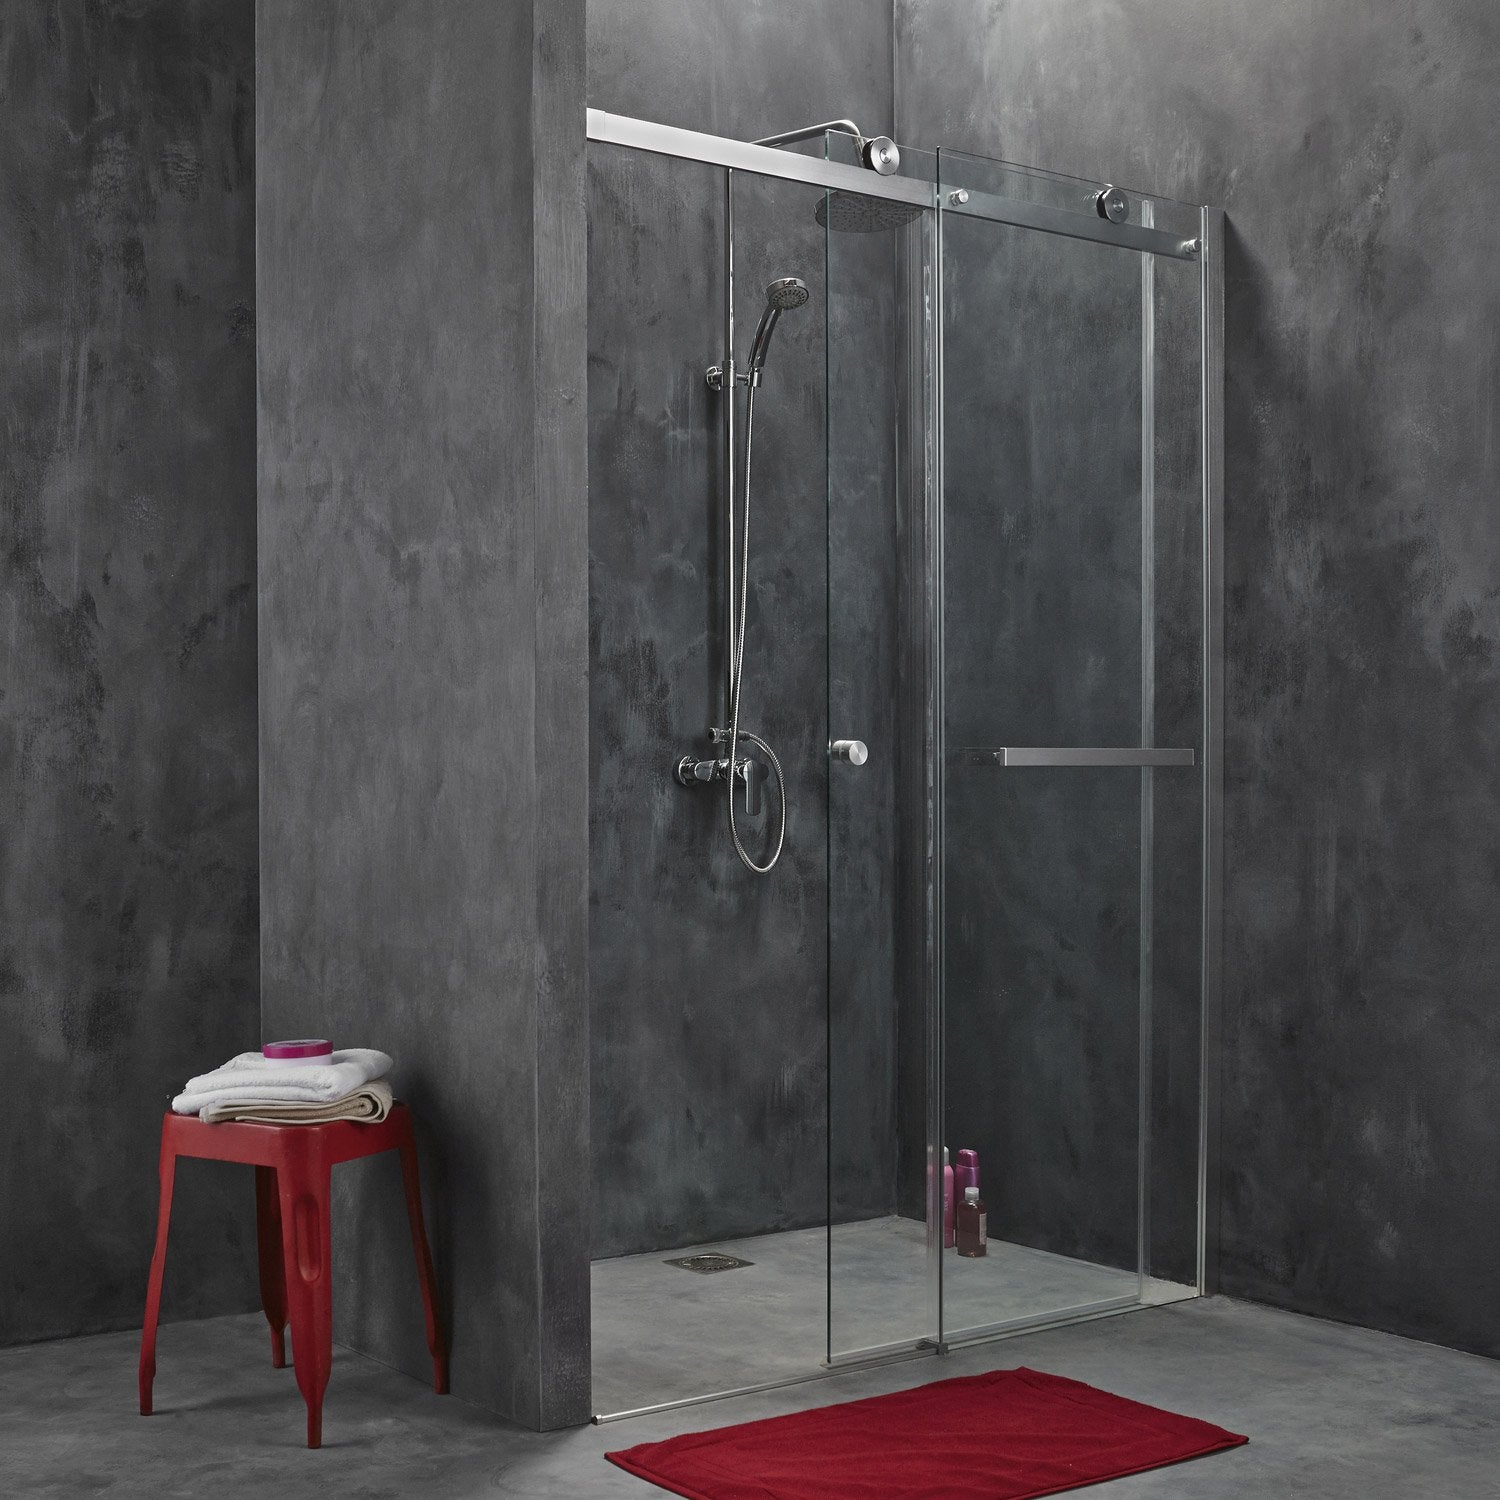 porte de douche coulissante 140 cm transparent fabrik leroy merlin. Black Bedroom Furniture Sets. Home Design Ideas